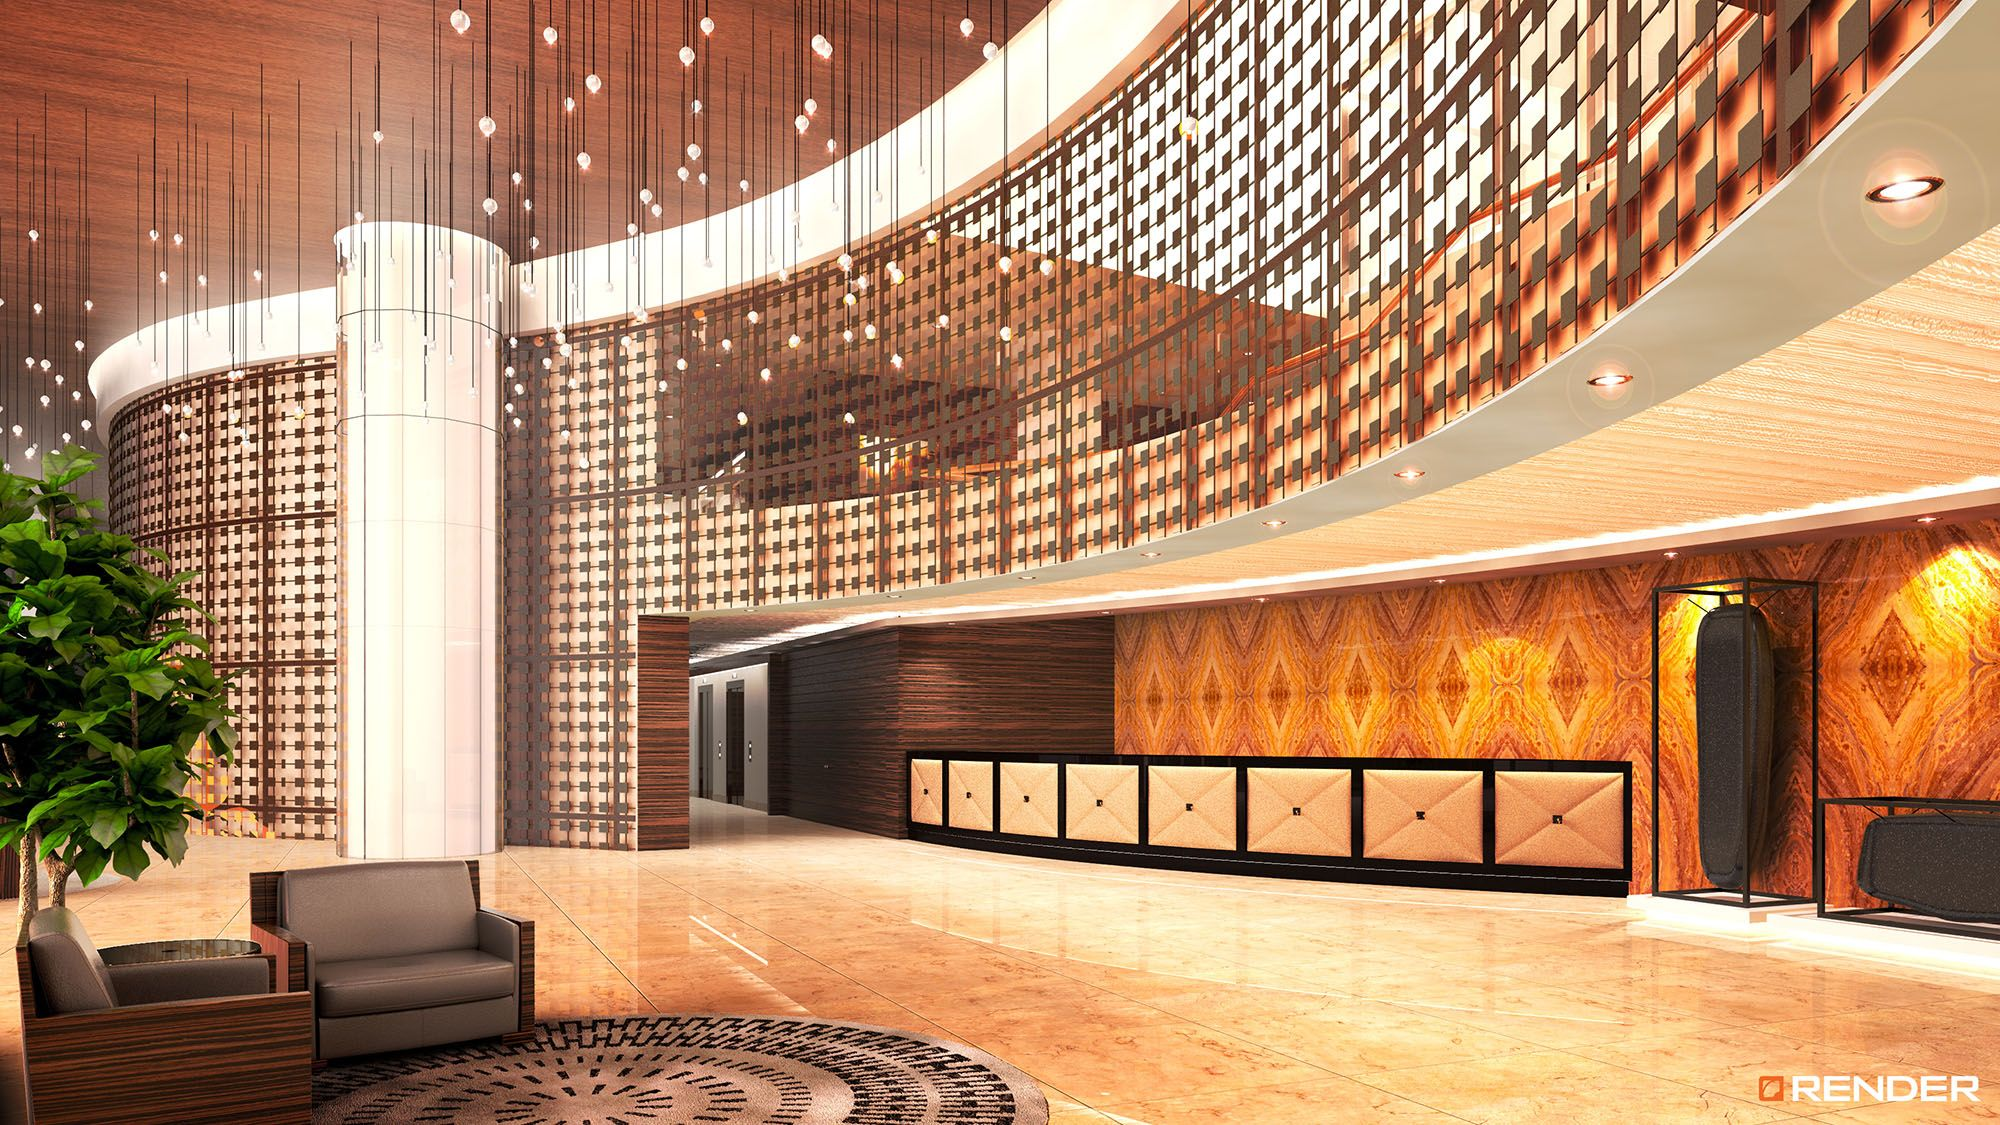 #sofia #building #residential #spgg #mexico #render #rendering #3d #architecture #realestate #building #interior #design #rendermediasolutions #bettersales #lobby